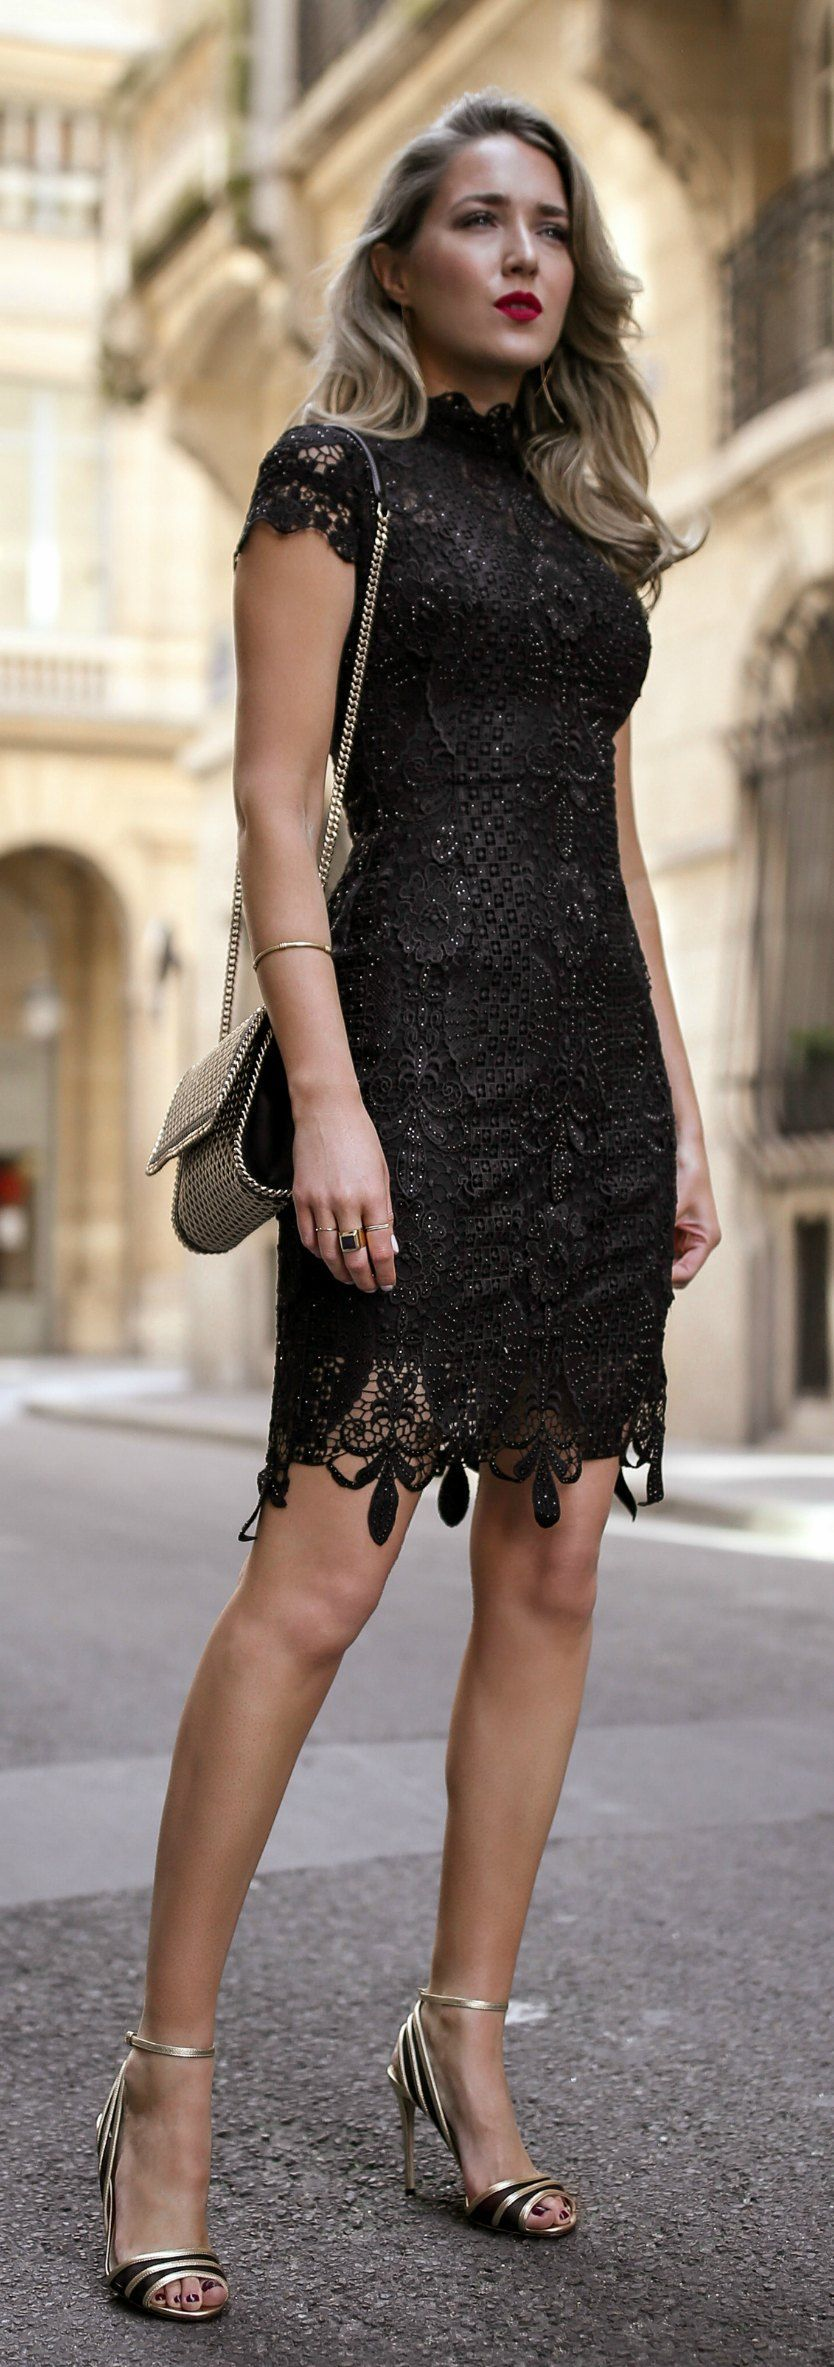 30 Dresses In 30 Days Day 11 What To Wear To A Cocktail Attire Wedding Black Lace Short Sleeve Mini Dres Lace Dress Black Short Sleeve Mini Dress Fashion [ 2367 x 834 Pixel ]